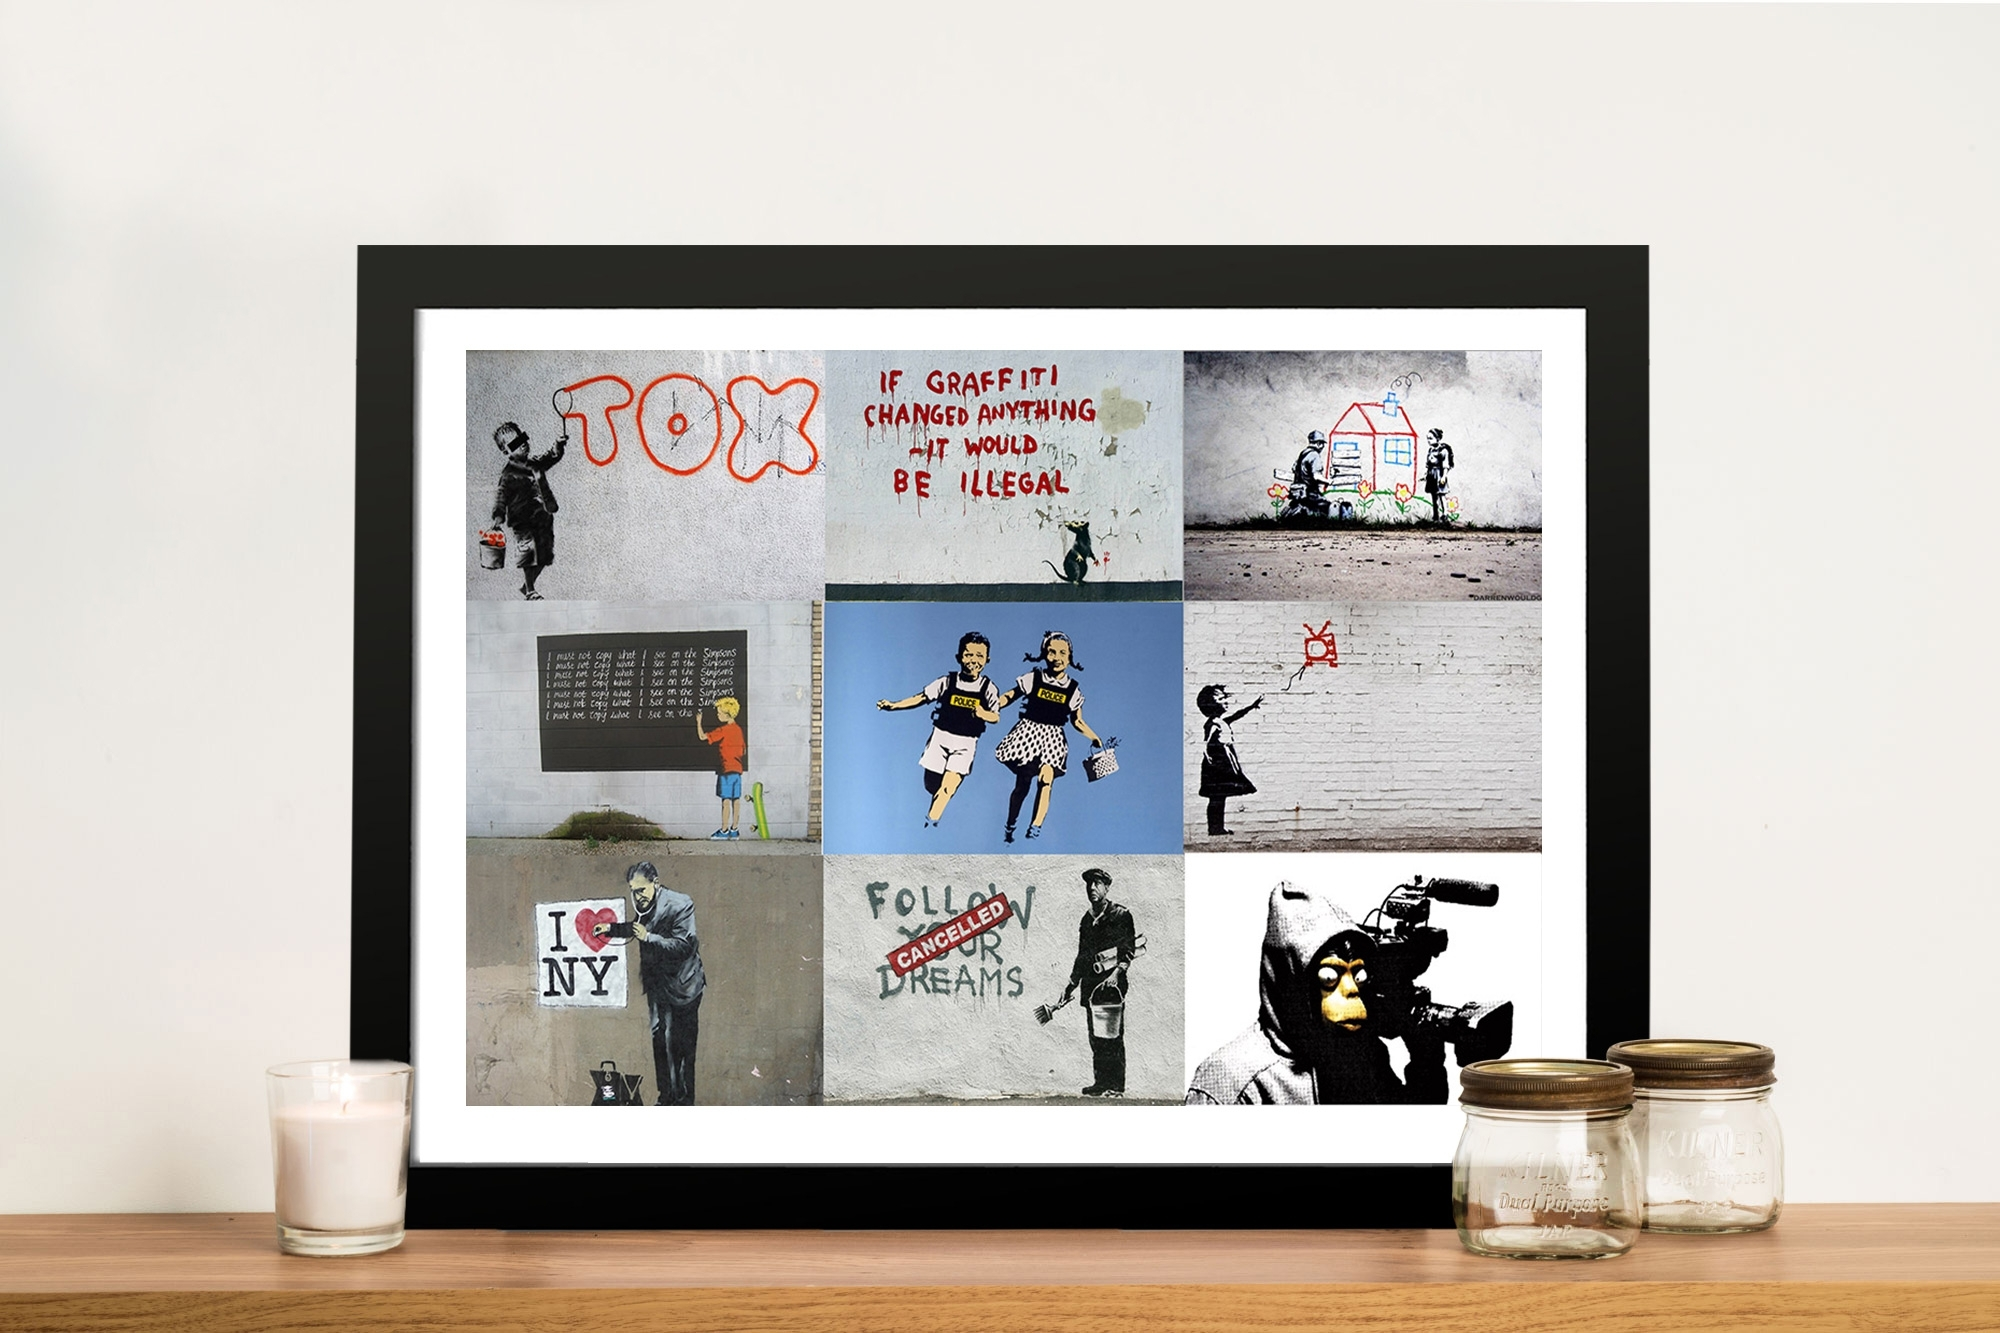 Banksy Montage Pictures Art Framed Wall Art Perth Au Regarding Current Framed Wall Art (View 4 of 15)